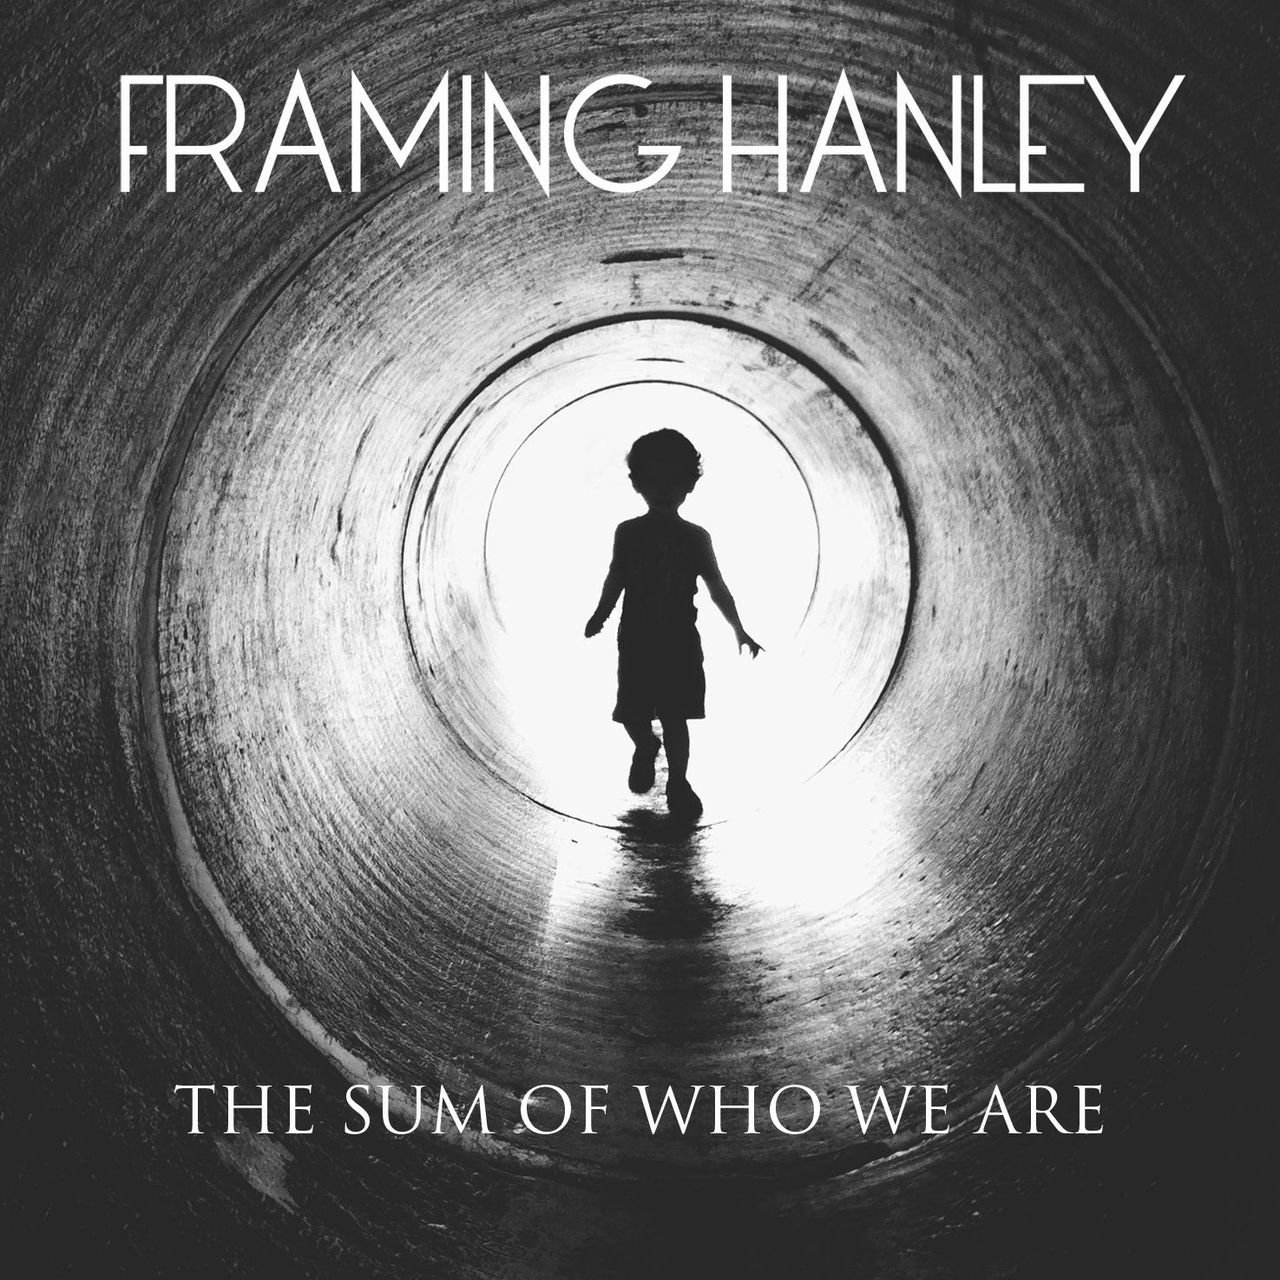 TIDAL: Listen to Framing Hanley on TIDAL